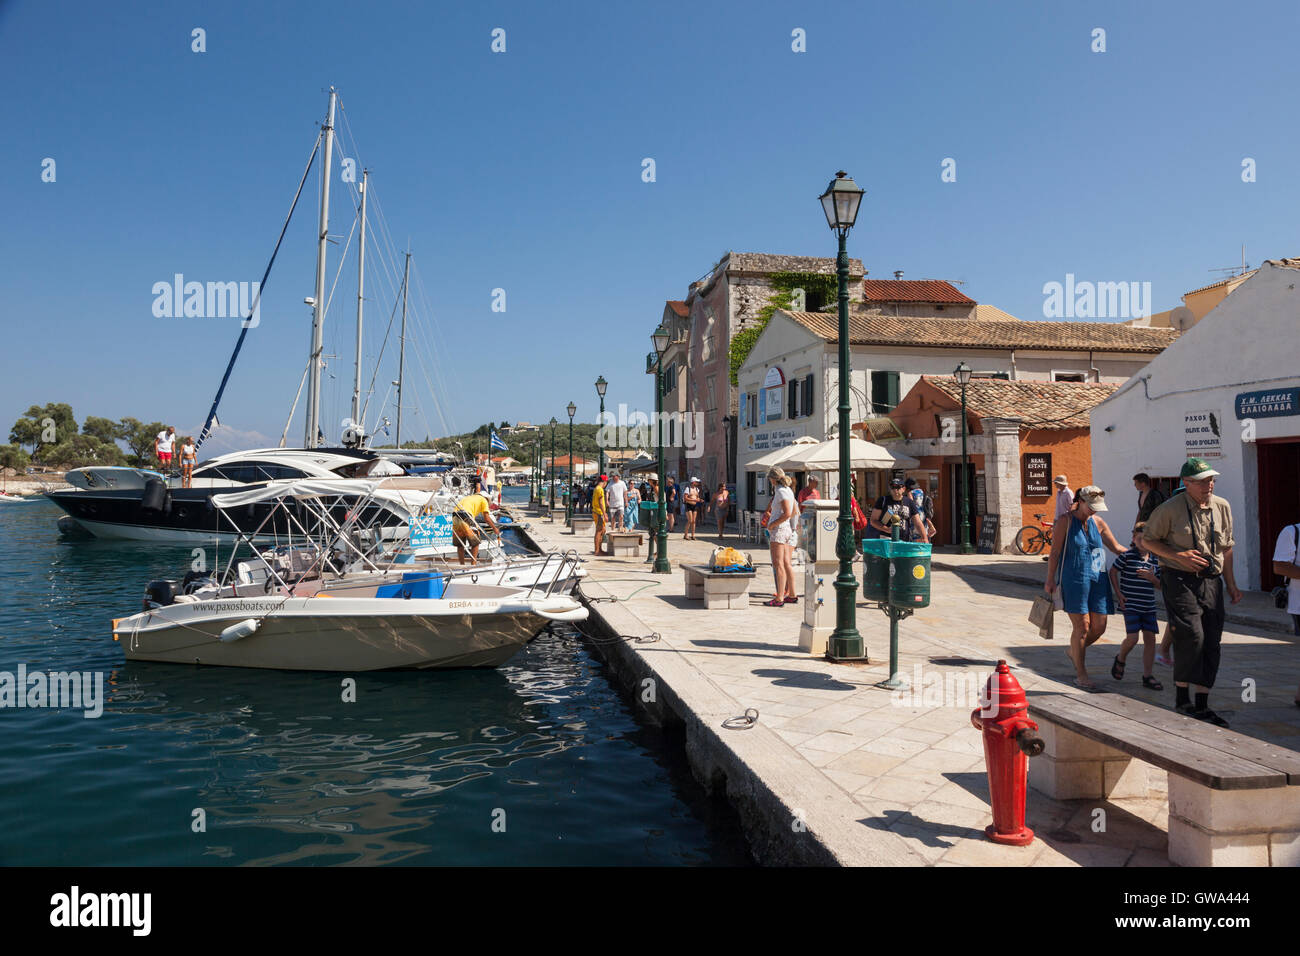 Gaios the largest town on Paxos, the smallest of the inhabited Ionian islands, Greece - Stock Image